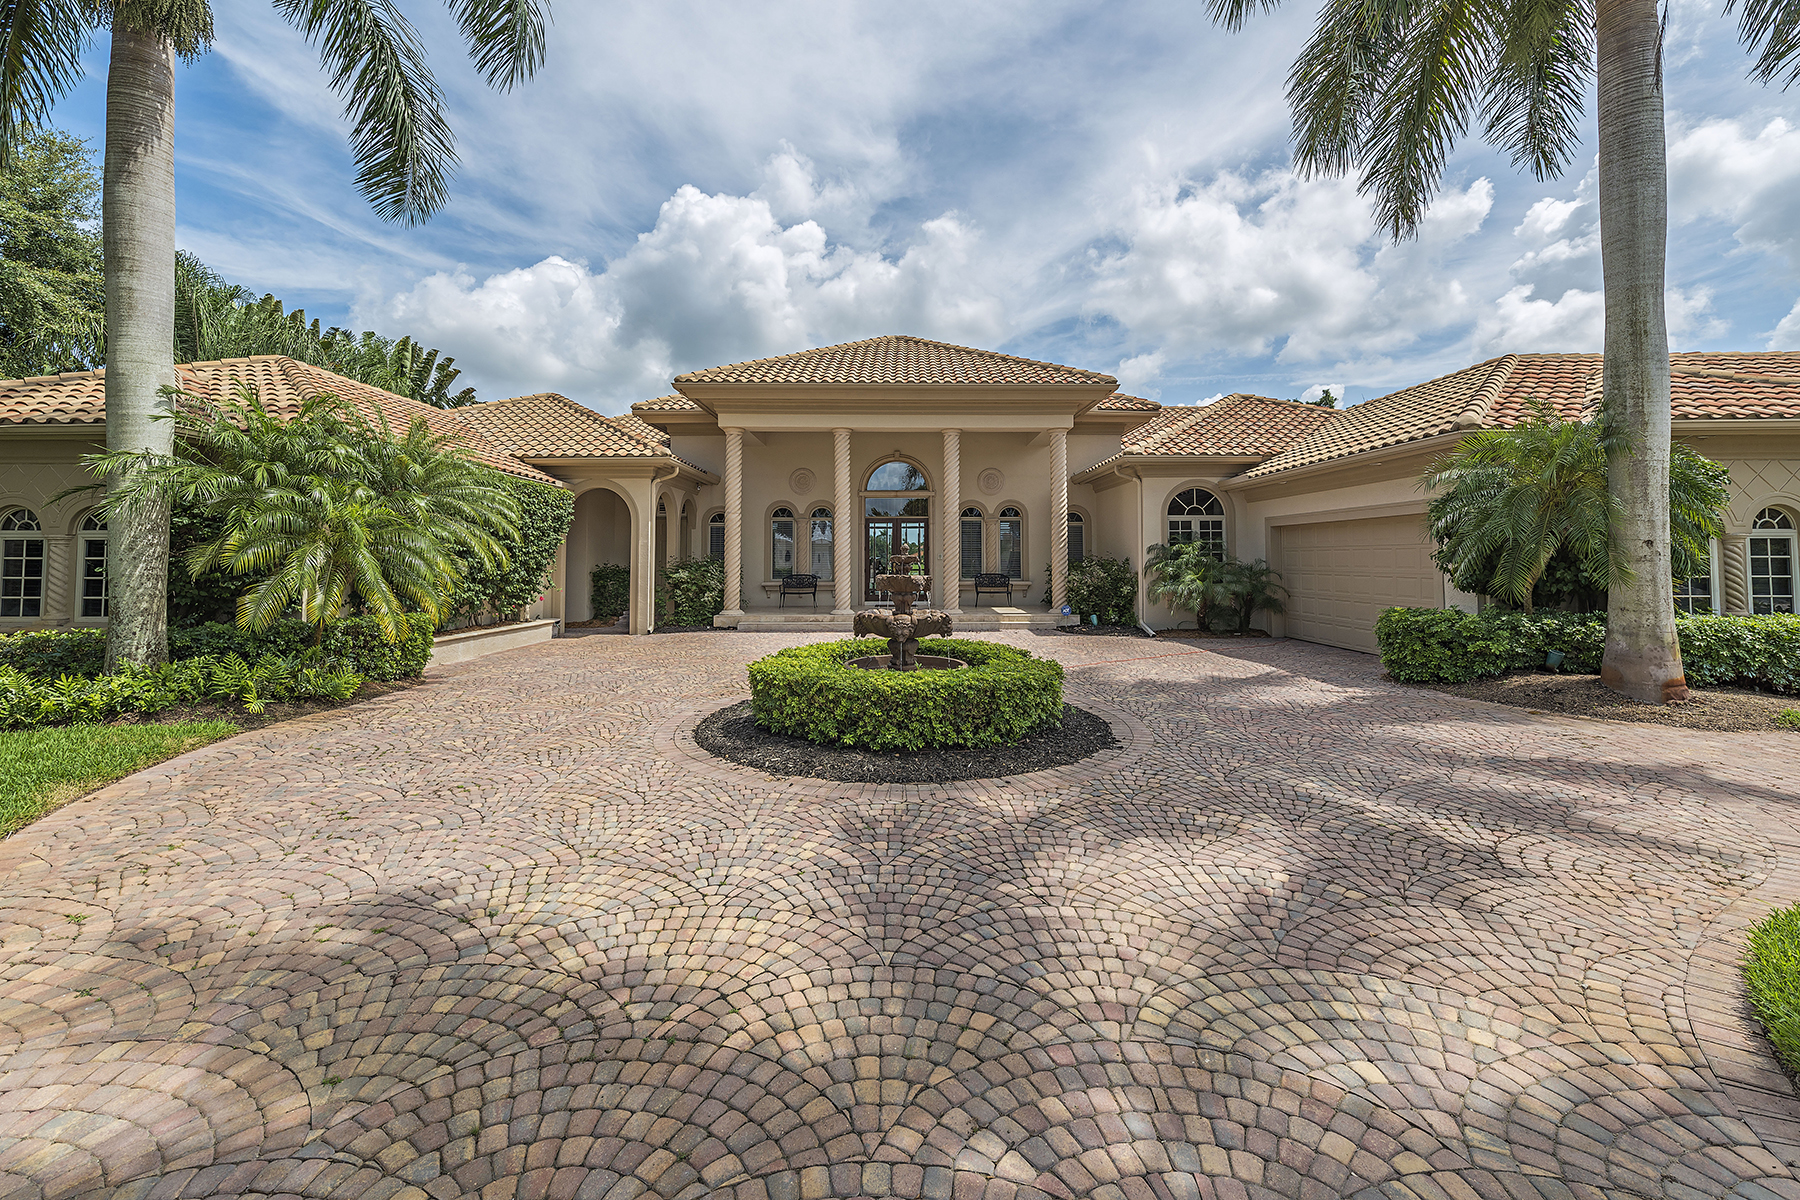 Single Family Home for Sale at QUAIL WEST 13751 Pondview Cir Naples, Florida, 34119 United States